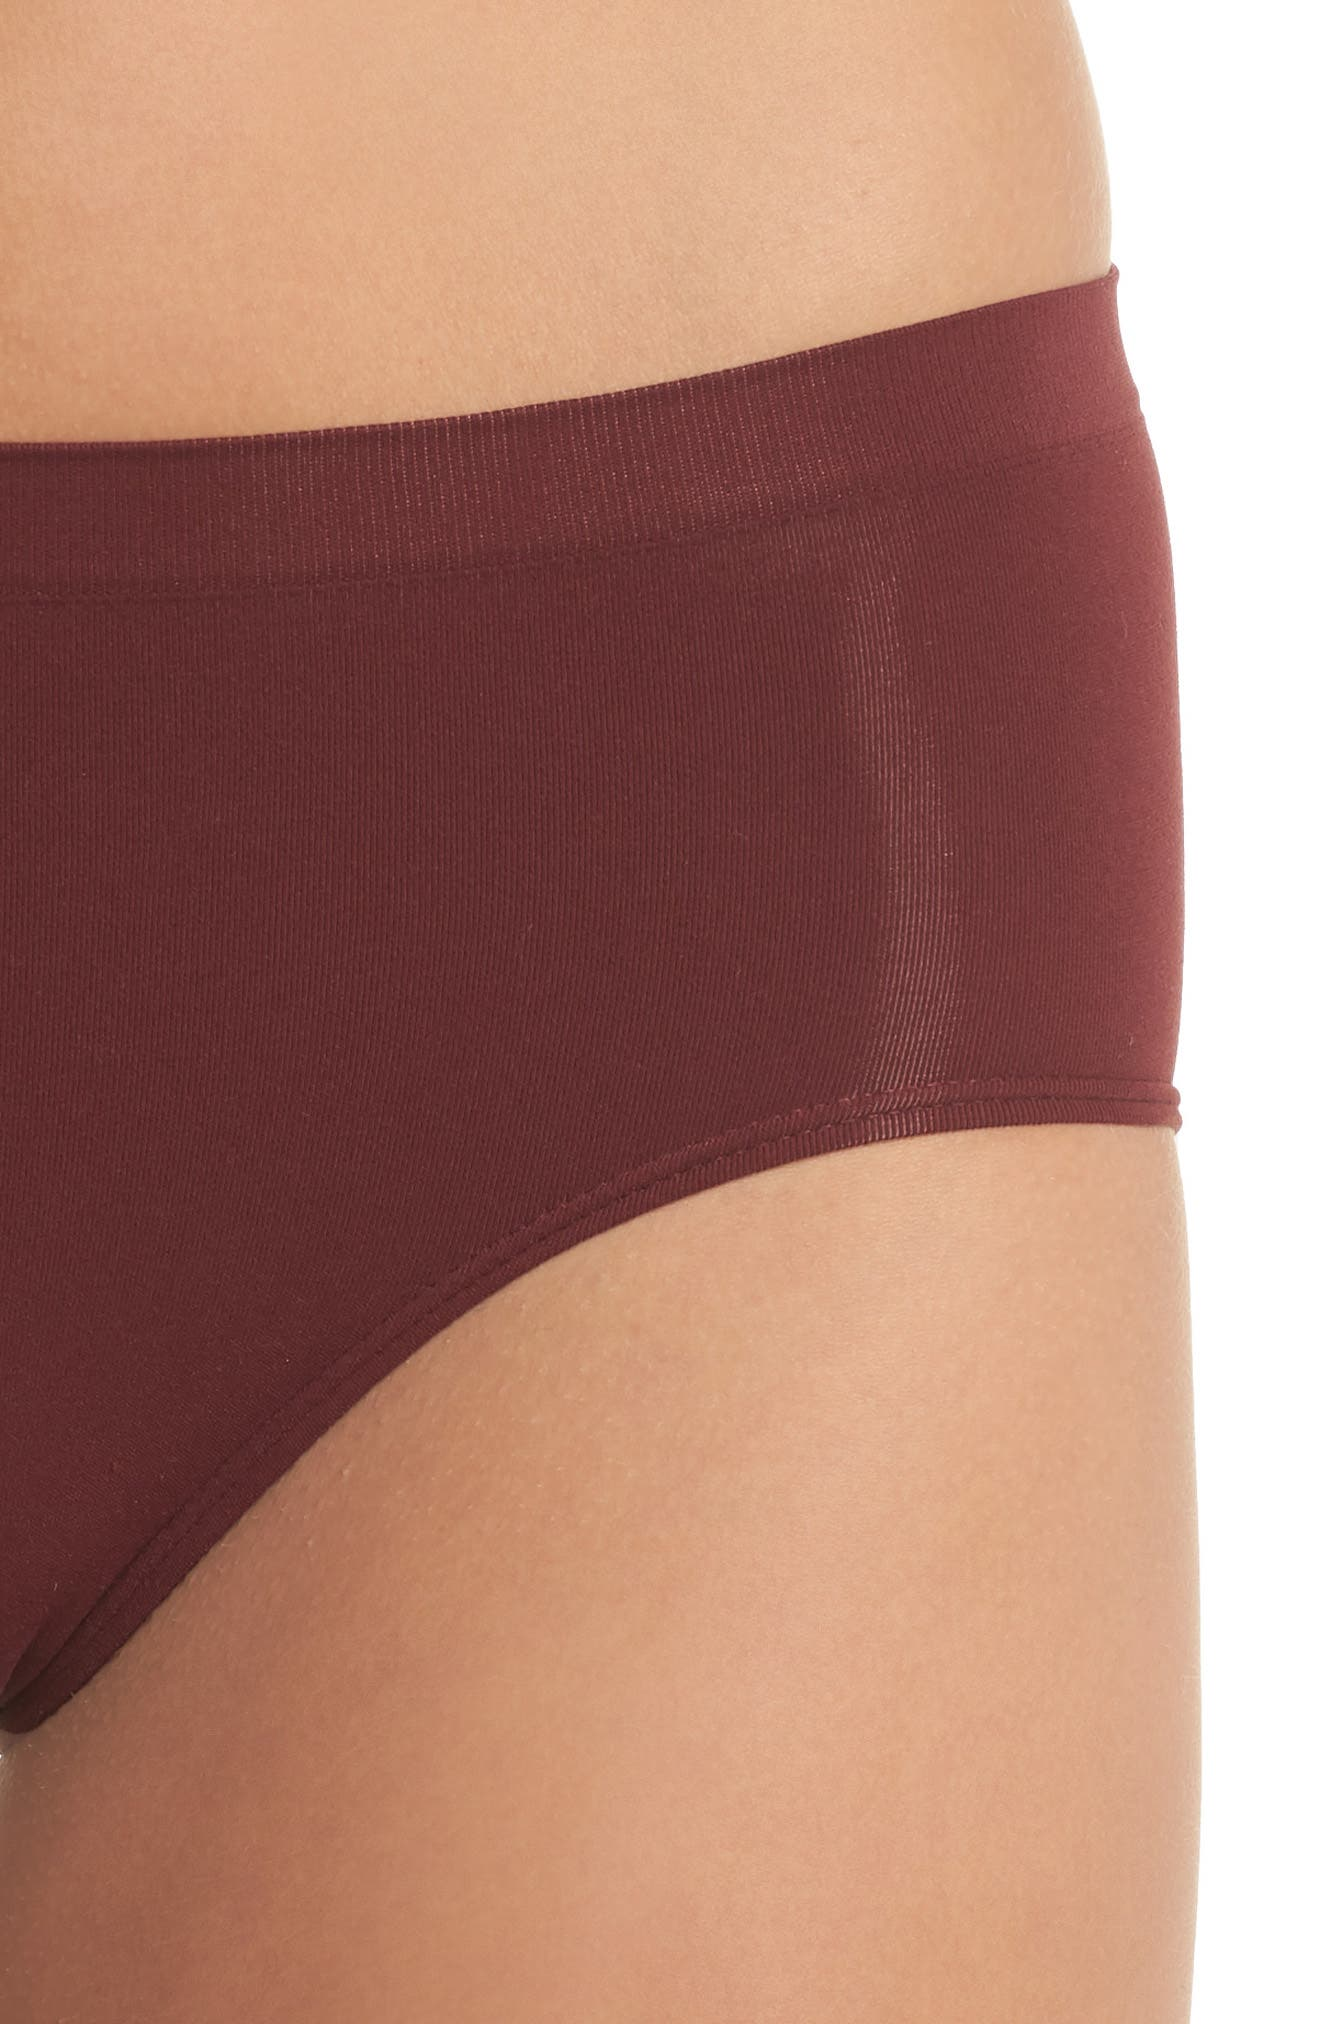 Seamless Hipster Briefs,                             Alternate thumbnail 4, color,                             RED TANNIN